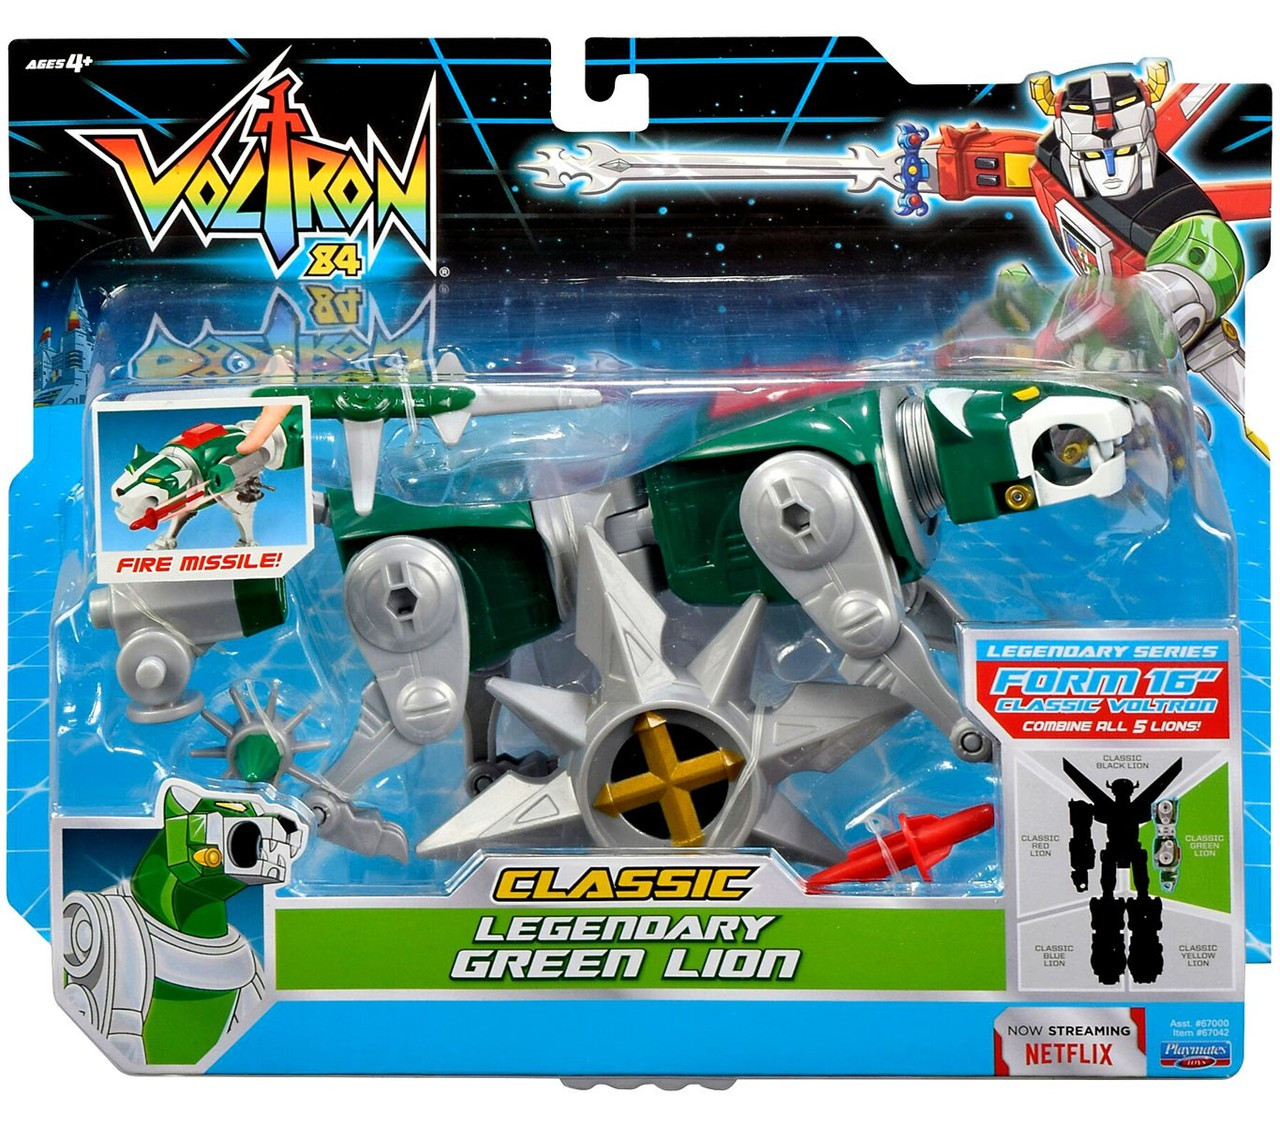 Voltron 84 CLASSIC Legendary Green Lion Combinable Action Figure